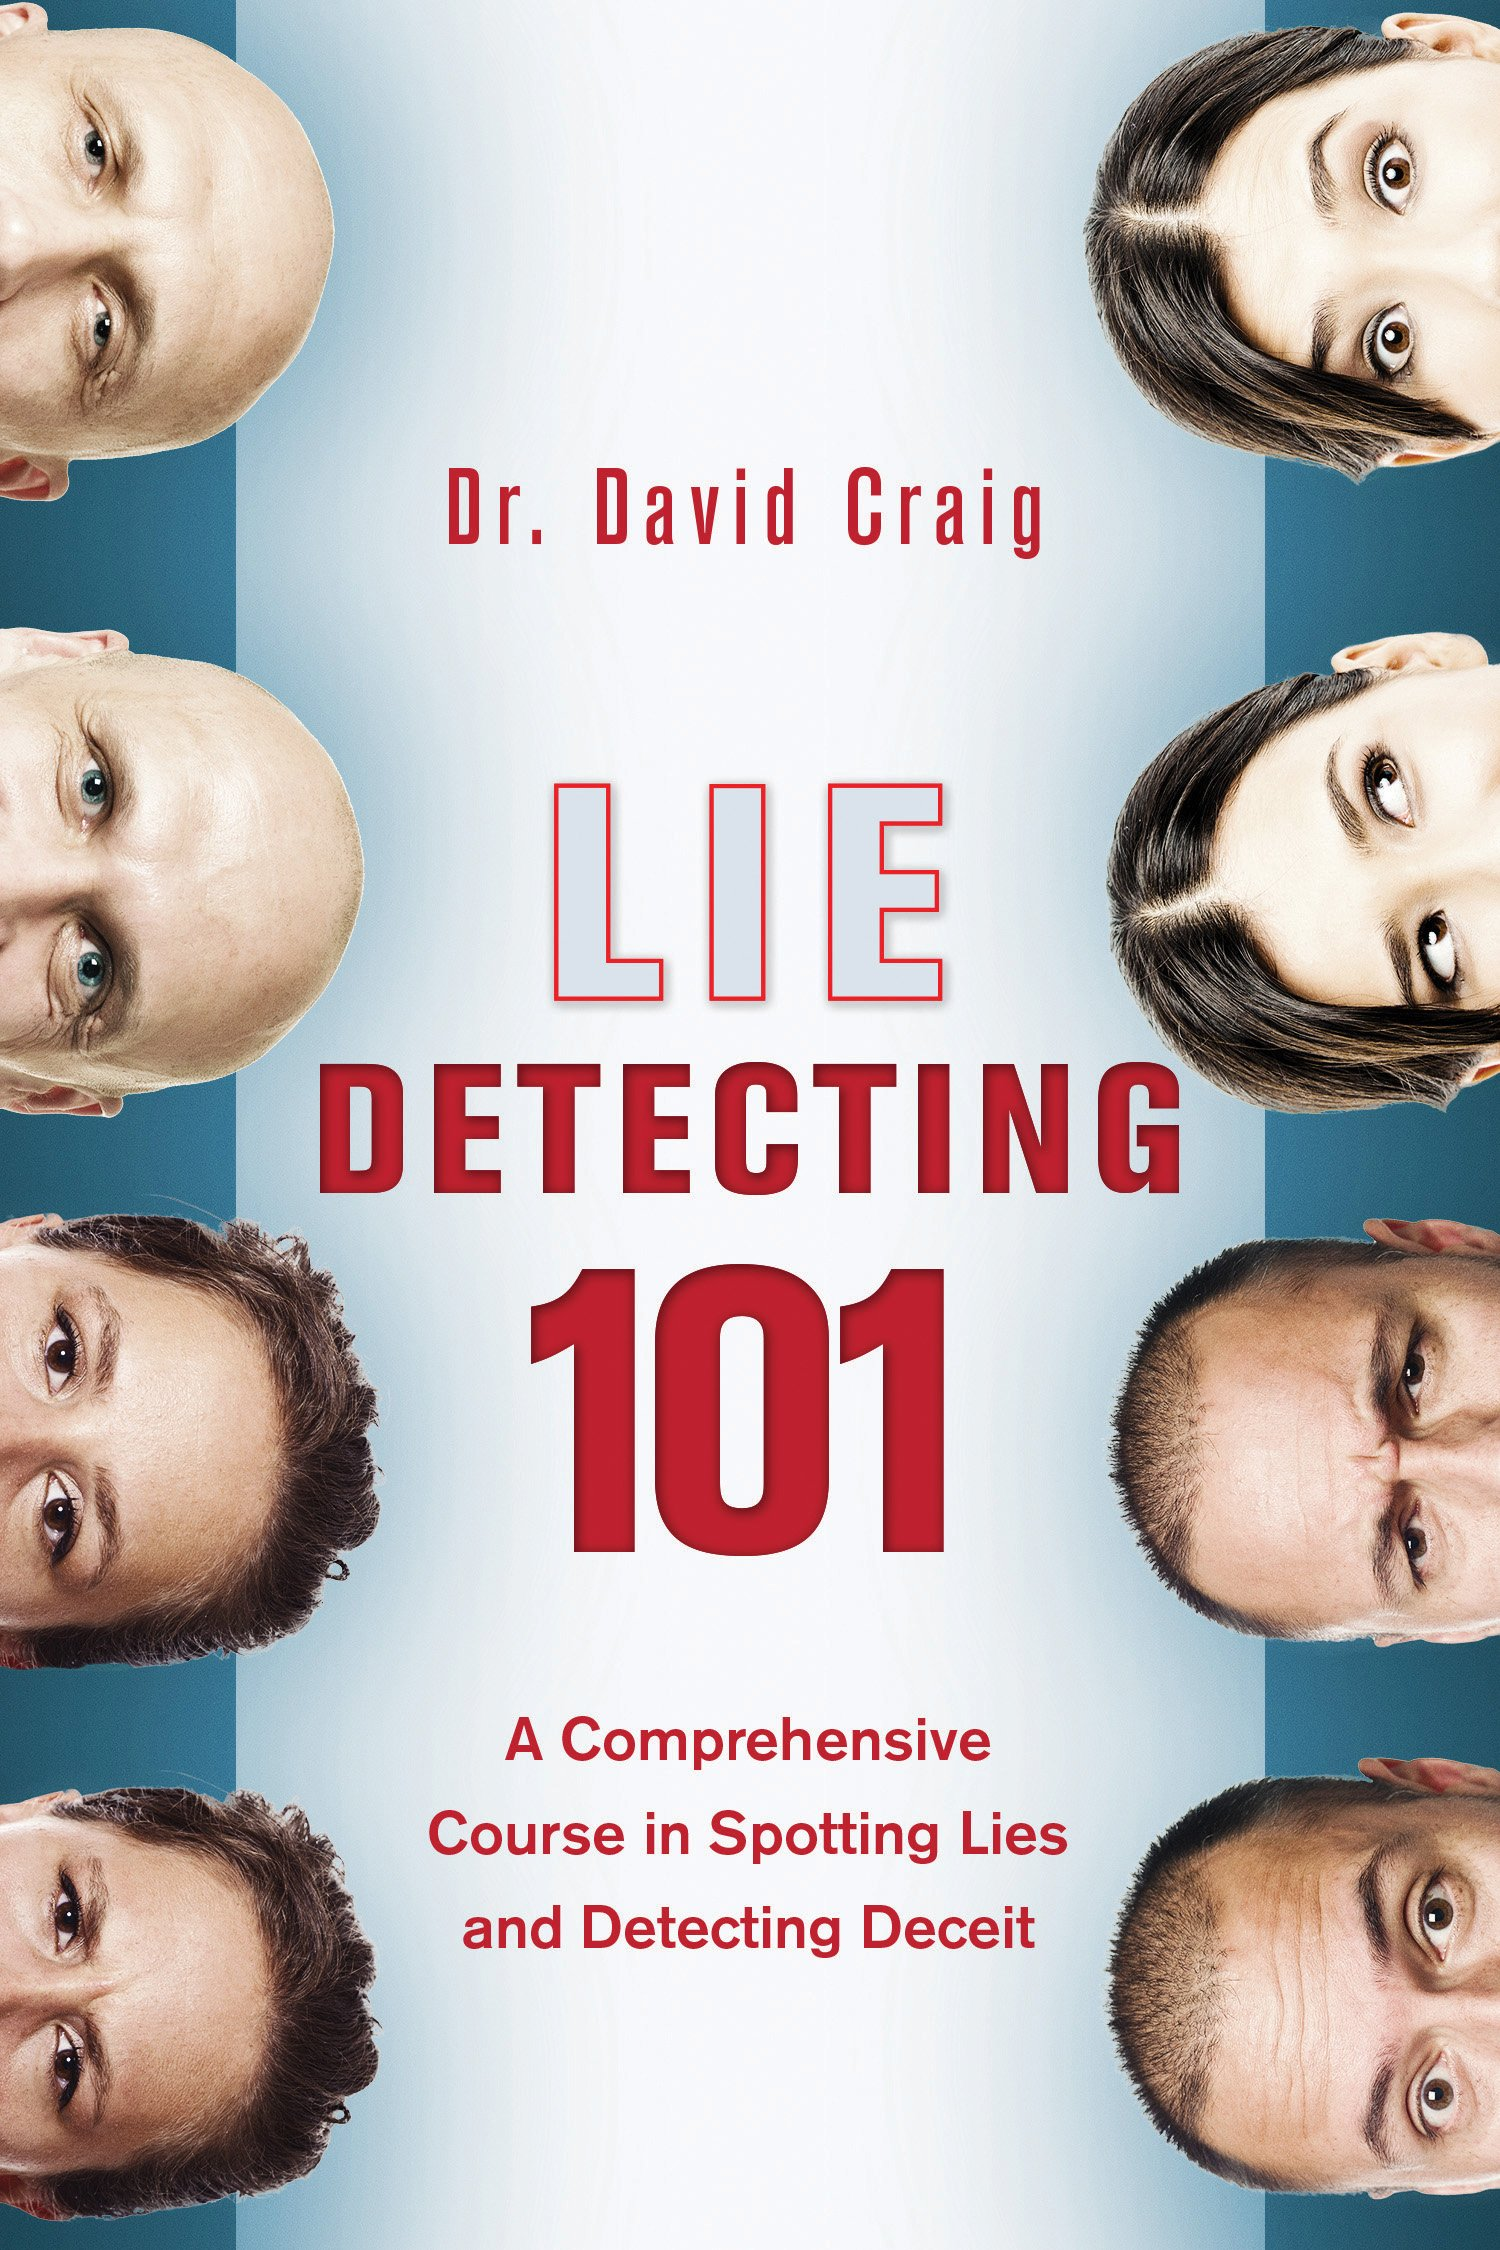 Lie Detecting 101: A Comprehensive Course in Spotting Lies and Detecting Deceit by Skyhorse Publishing